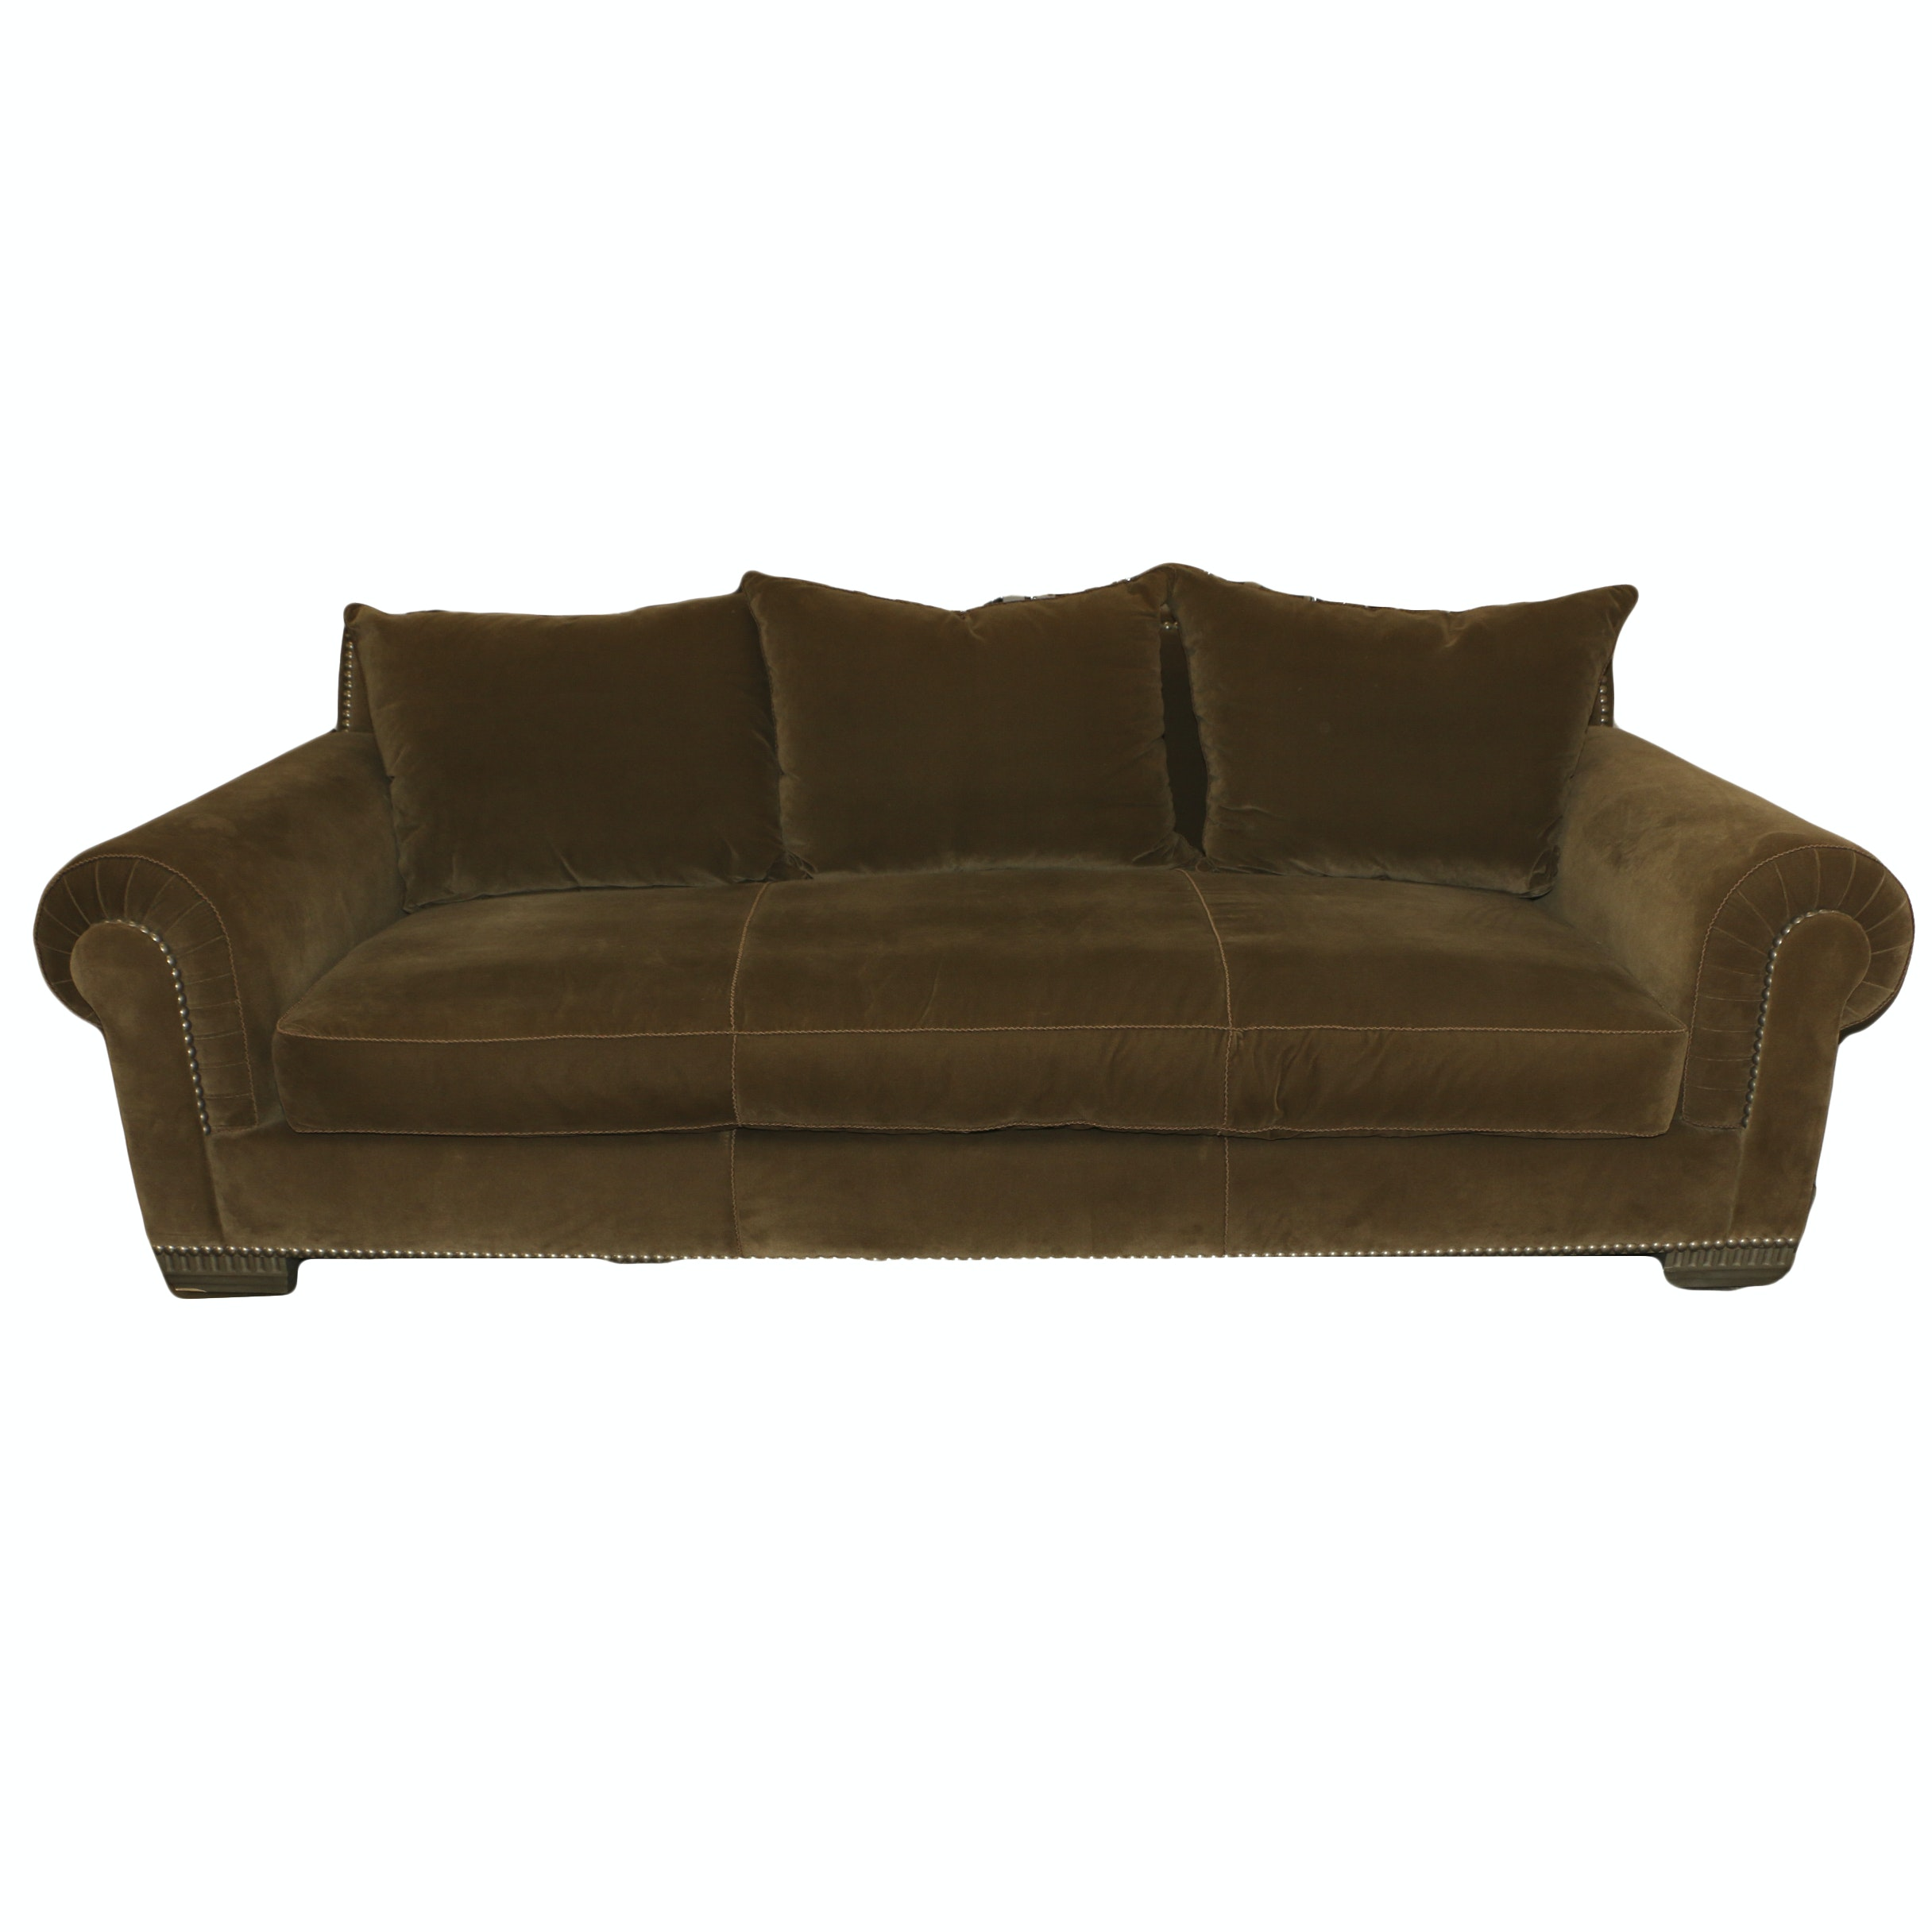 Upholstered Sofa by Marge Carson, 21st Century